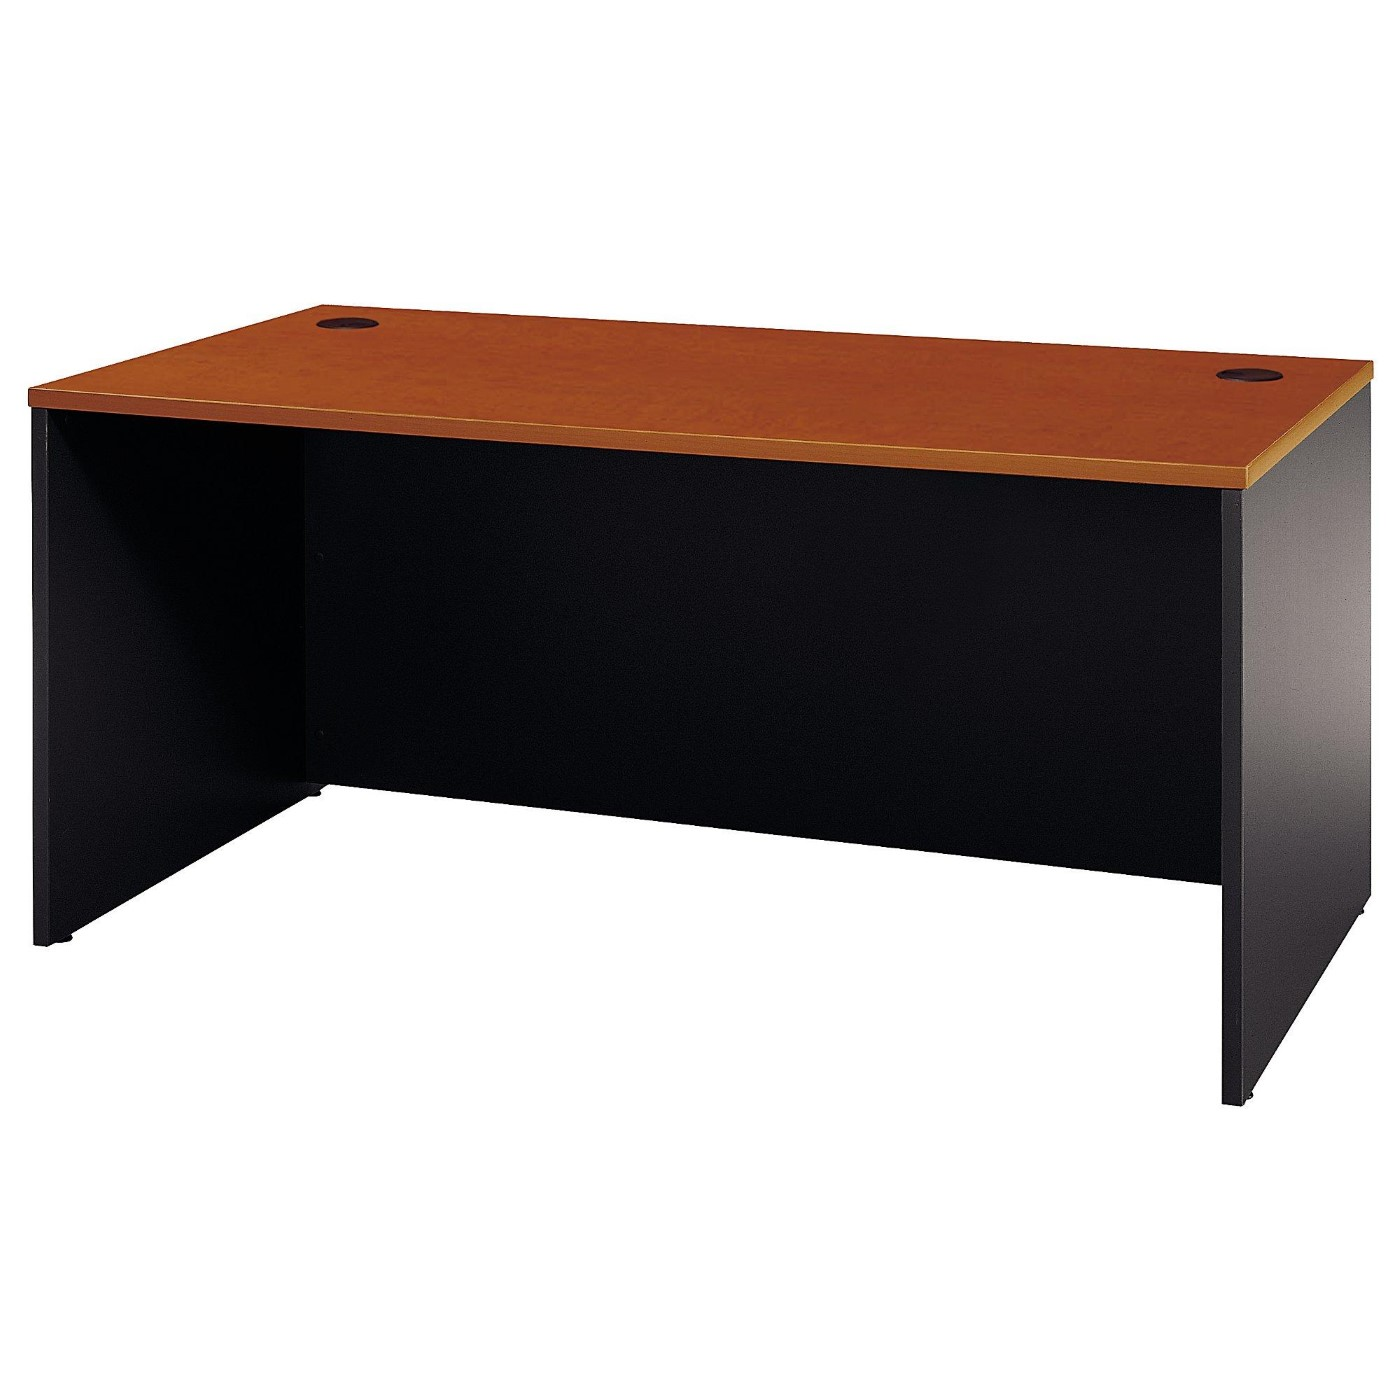 BUSH BUSINESS FURNITURE SERIES C 66W X 30D OFFICE DESK. FREE SHIPPING</font></b></font>&#x1F384<font color=red><b>ERGONOMICHOME HOLIDAY SALE - ENDS DEC. 17, 2019</b></font>&#x1F384